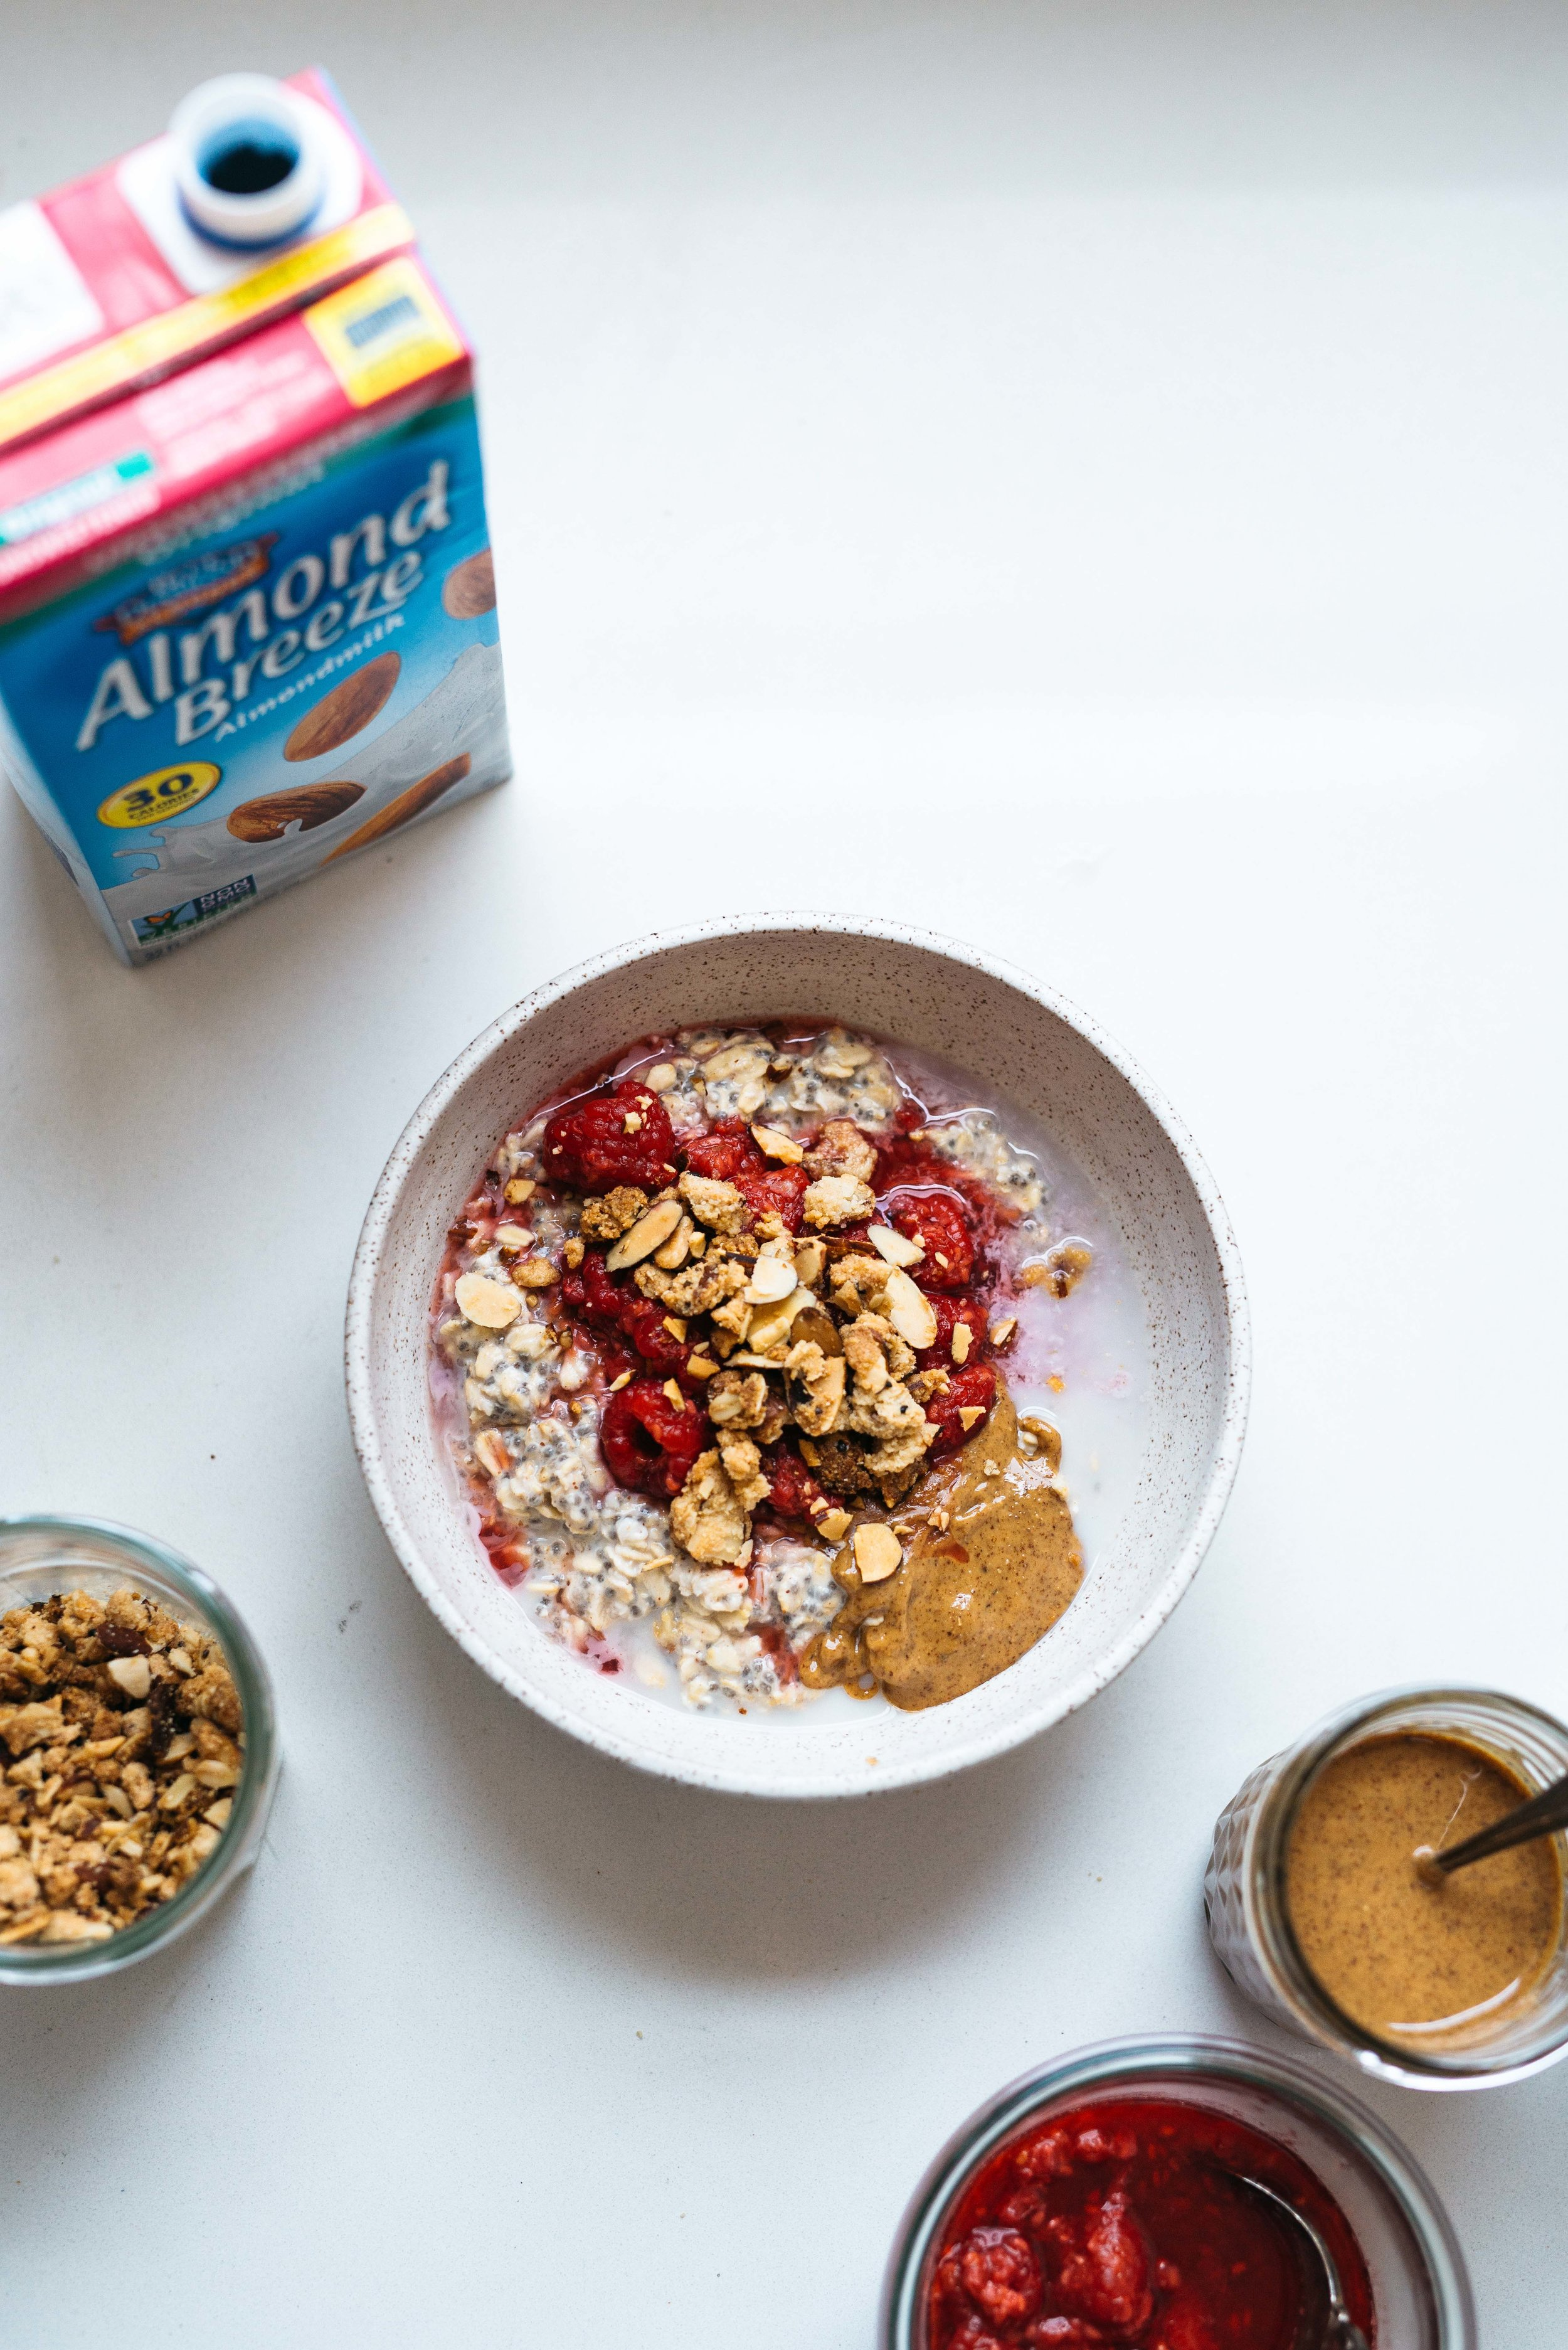 Raspberry Crumble Overnight Chia Oats | Dolly and Oatmeal